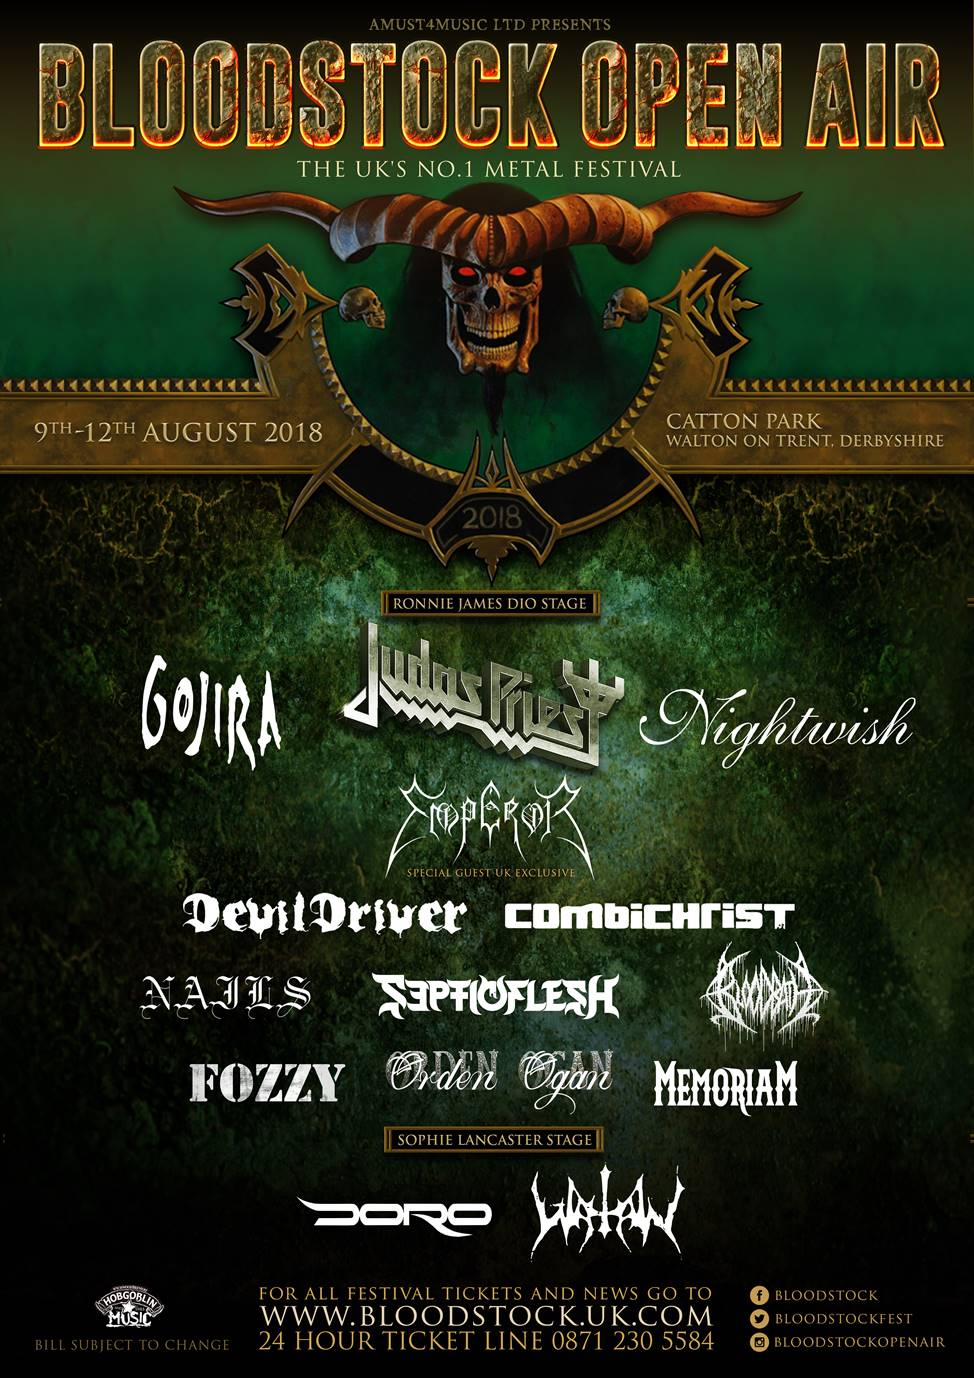 BLOODSTOCK welcome DORO, FOZZY, BLOODBATH, & SEPTICFLESH